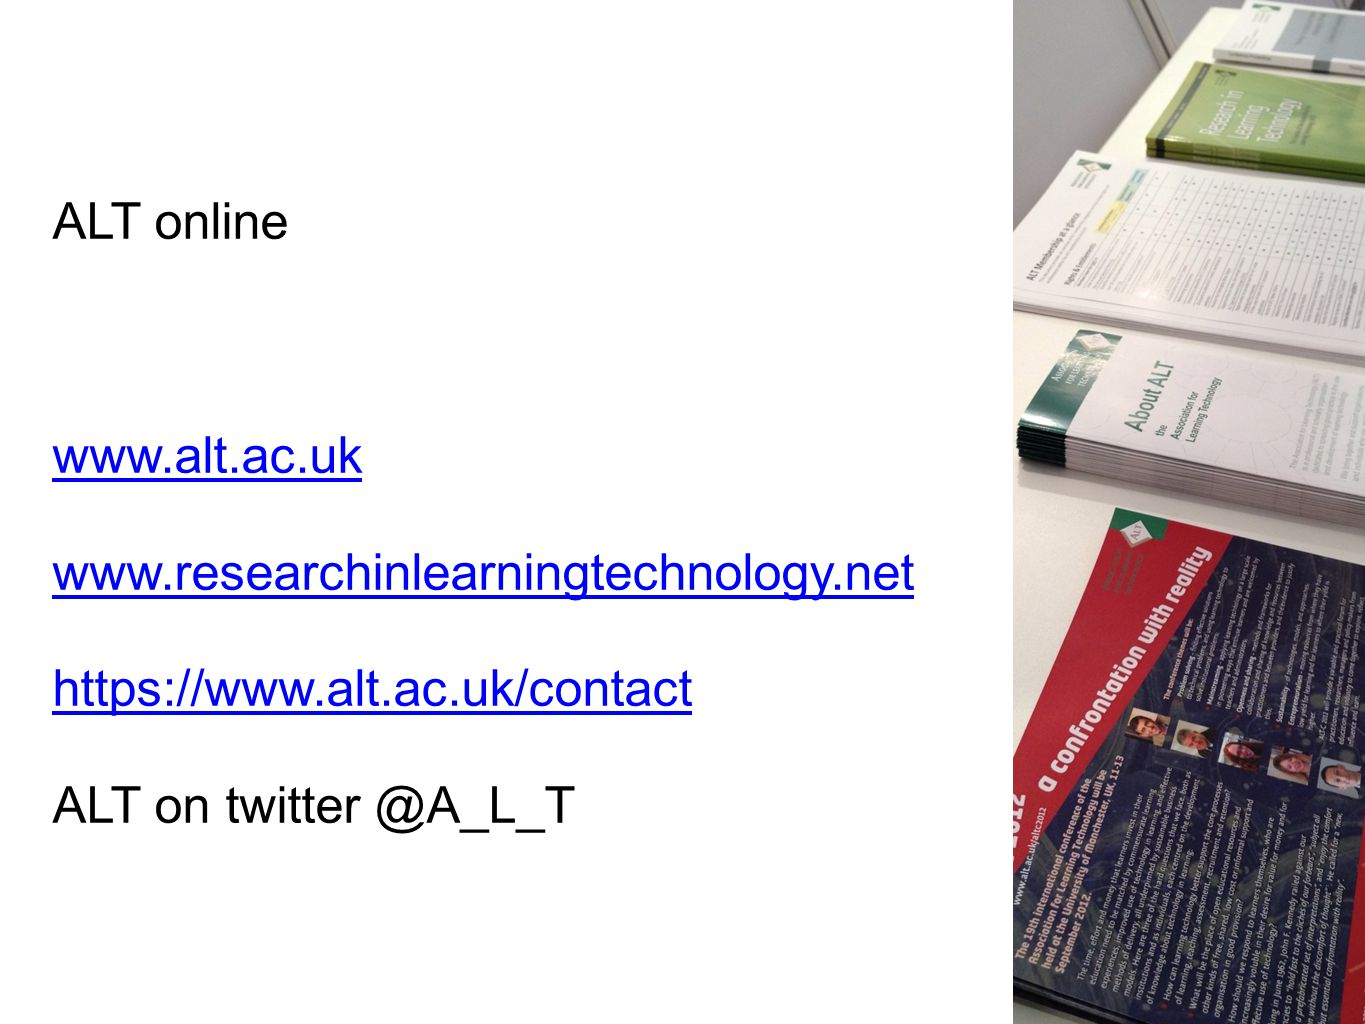 ALT online www.alt.ac.uk www.researchinlearningtechnology.net https://www.alt.ac.uk/contact ALT on twitter @A_L_T